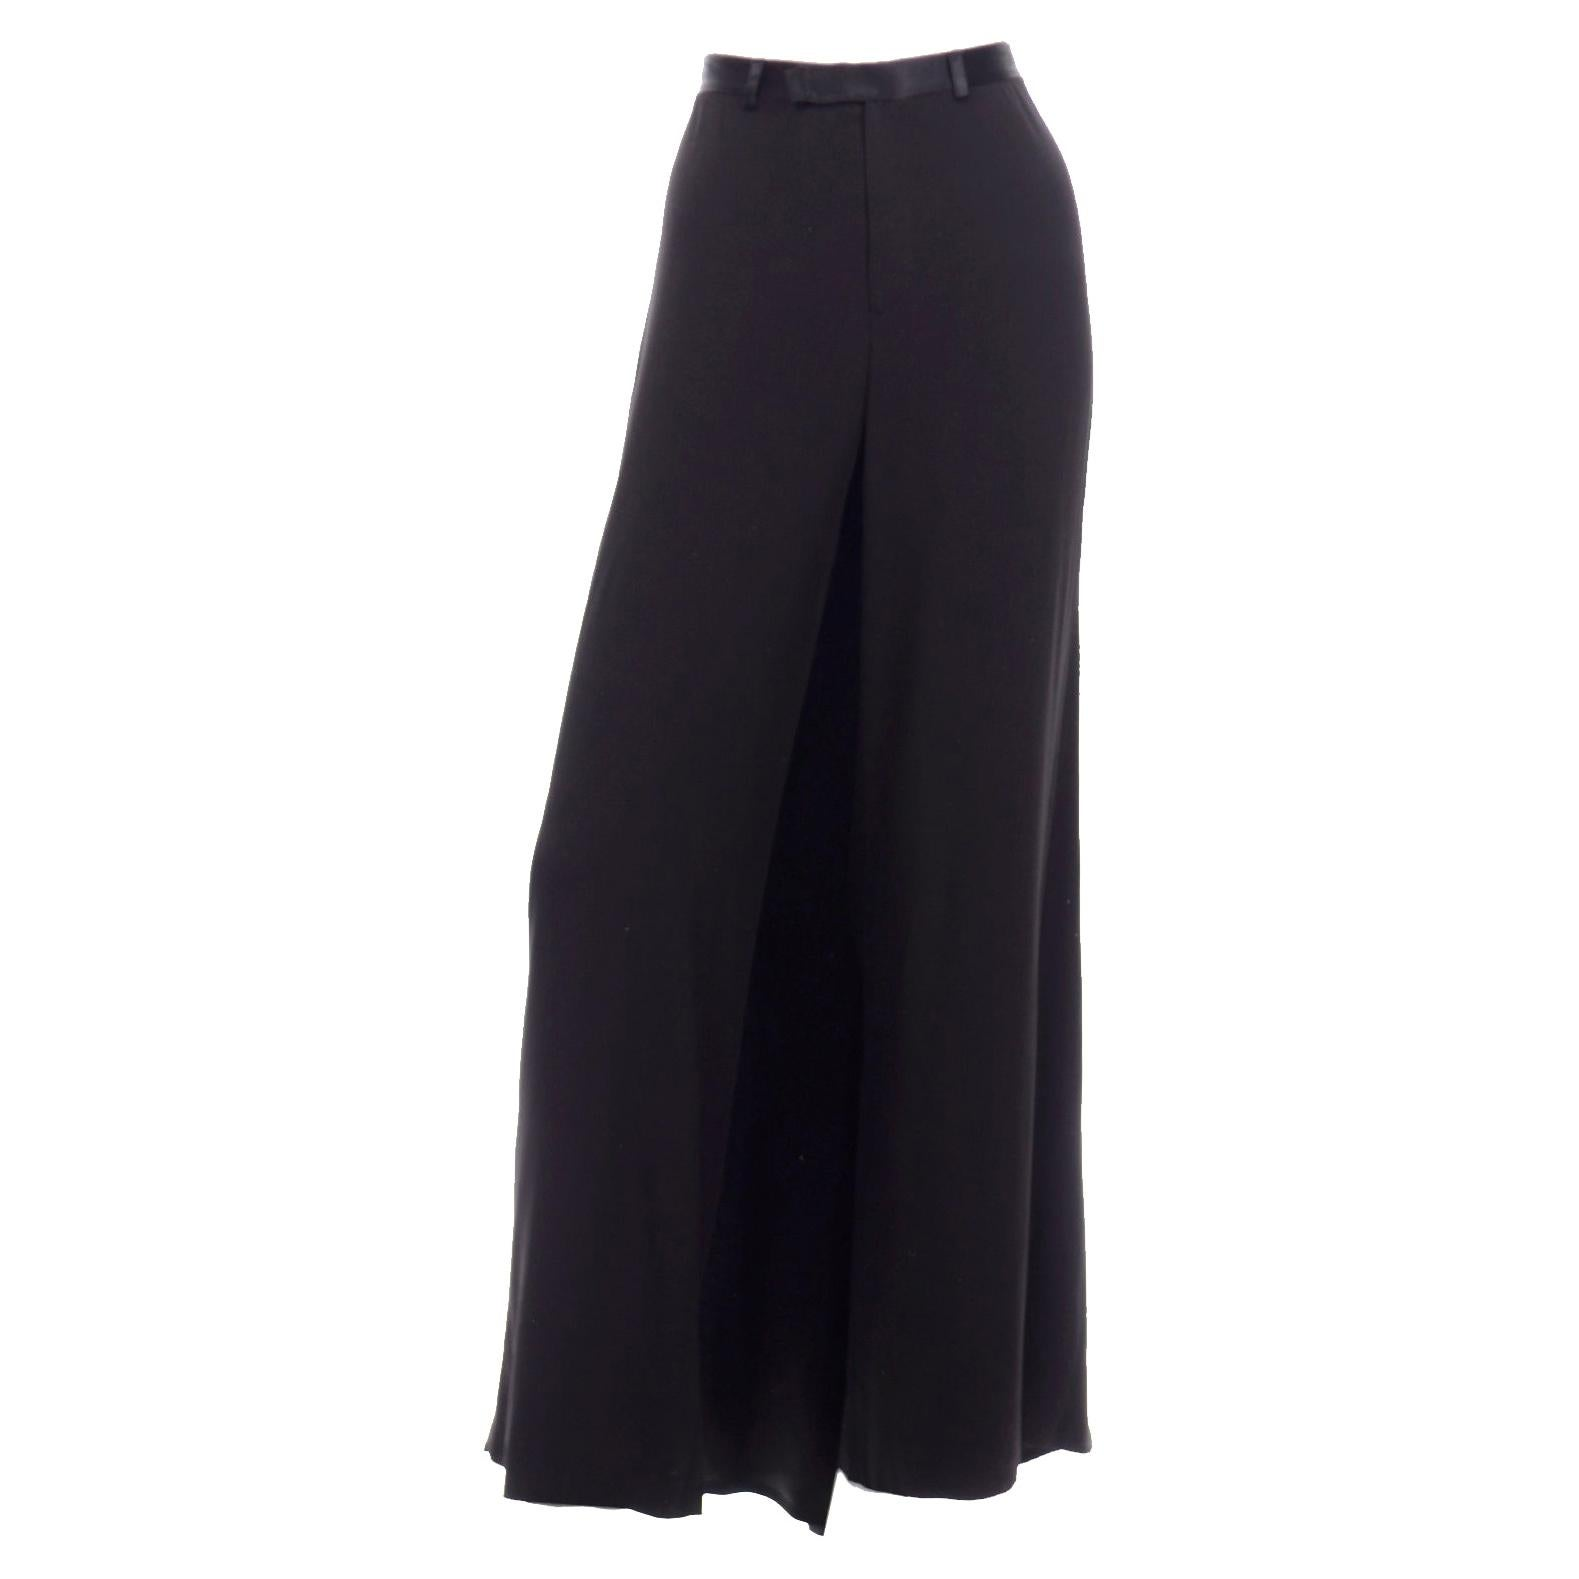 Jean Paul Gaultier Long Black Evening Skirt Overlay w Train & Trousers New w Tag